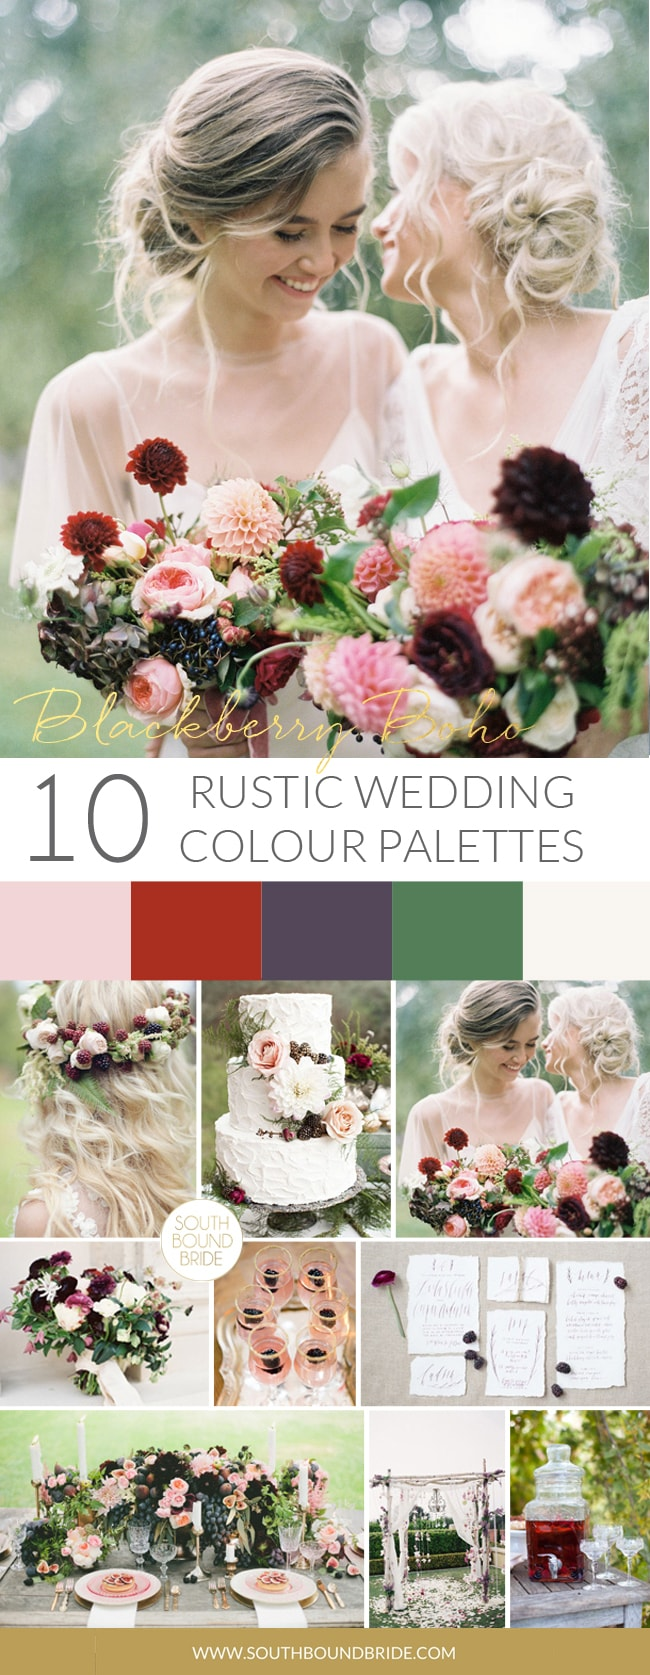 Blackberry Boho Rustic Wedding Palette | SouthBound Bride